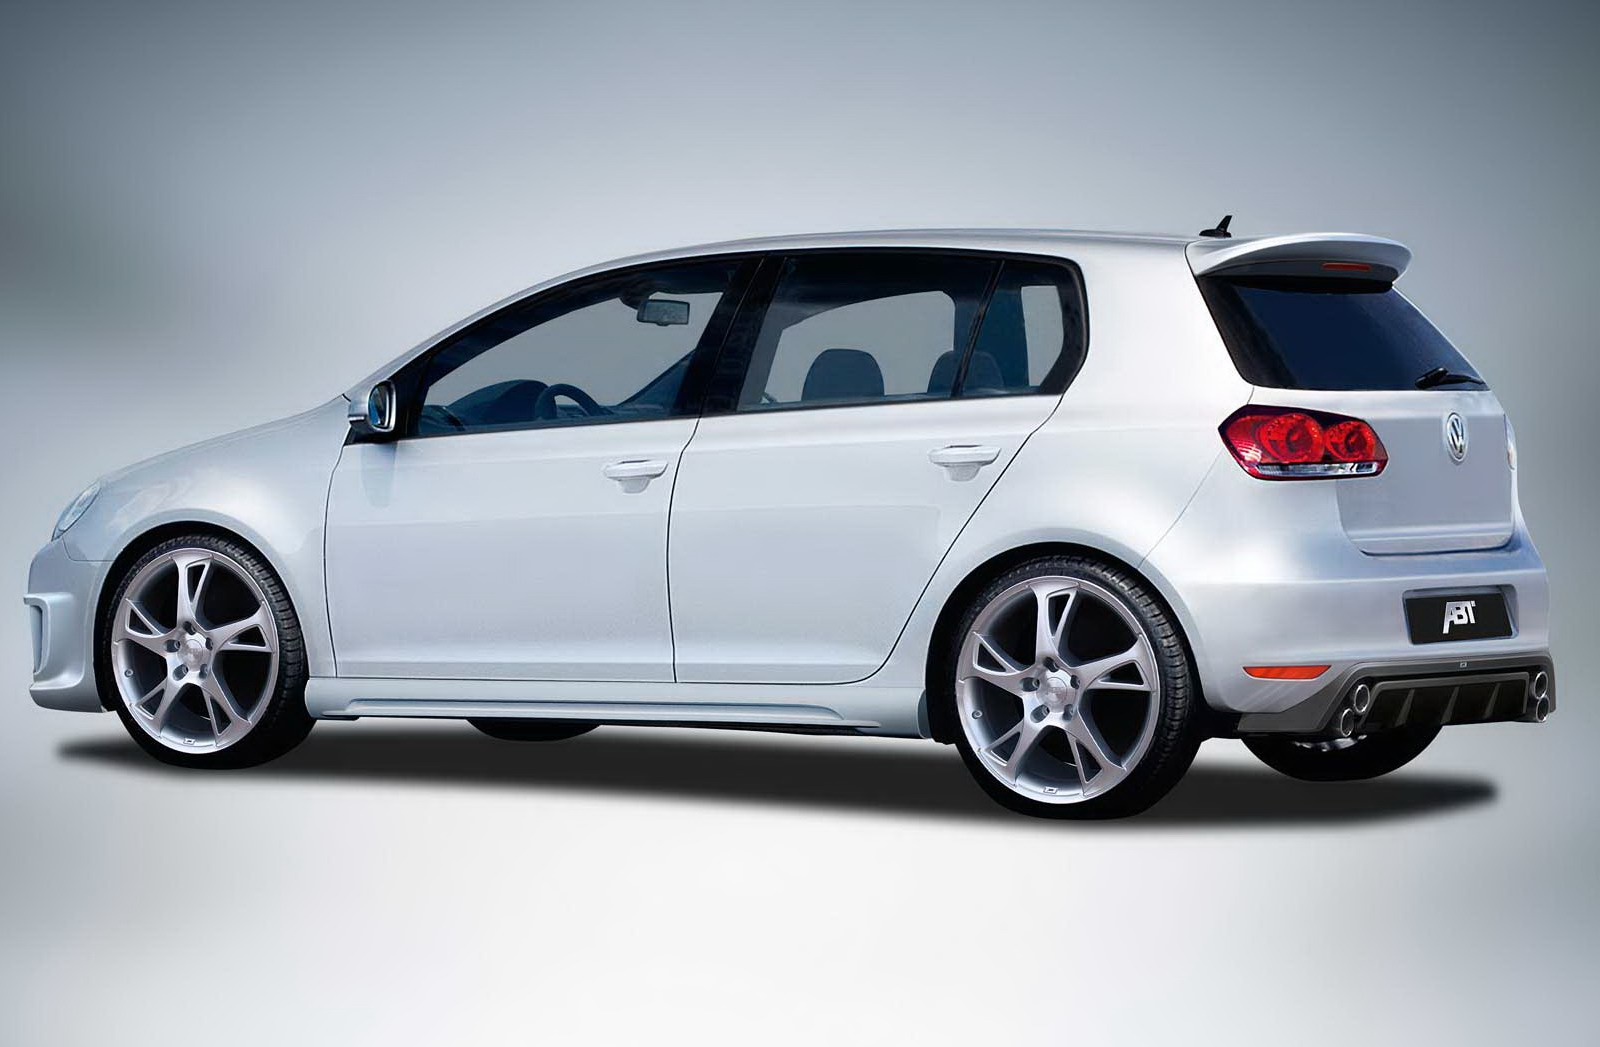 3dtuning of volkswagen golf 6 5 door hatchback 2011 unique on line car. Black Bedroom Furniture Sets. Home Design Ideas